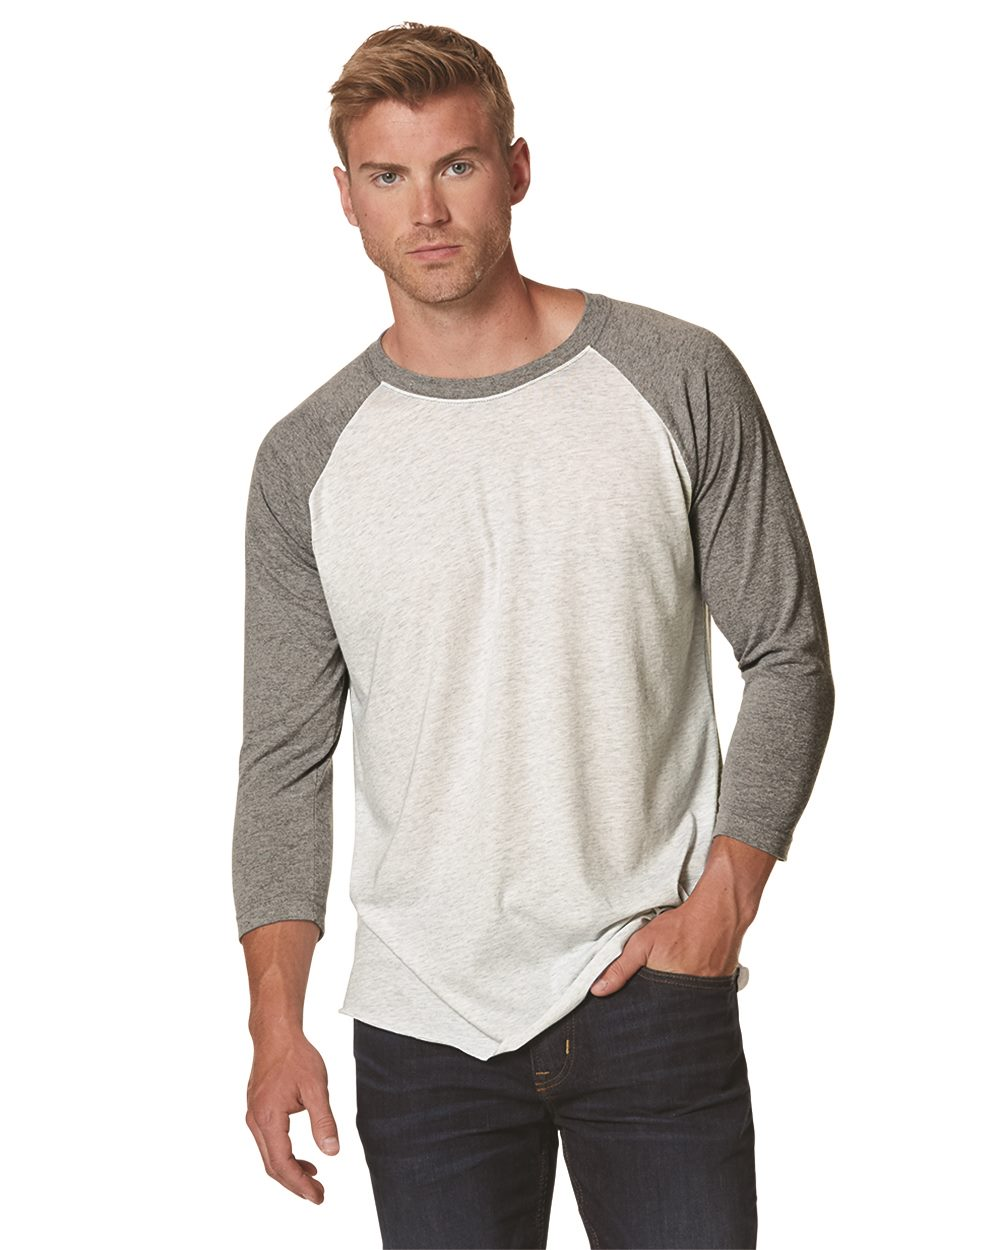 Next-Level-Triblend-Baseball-Raglan-6051